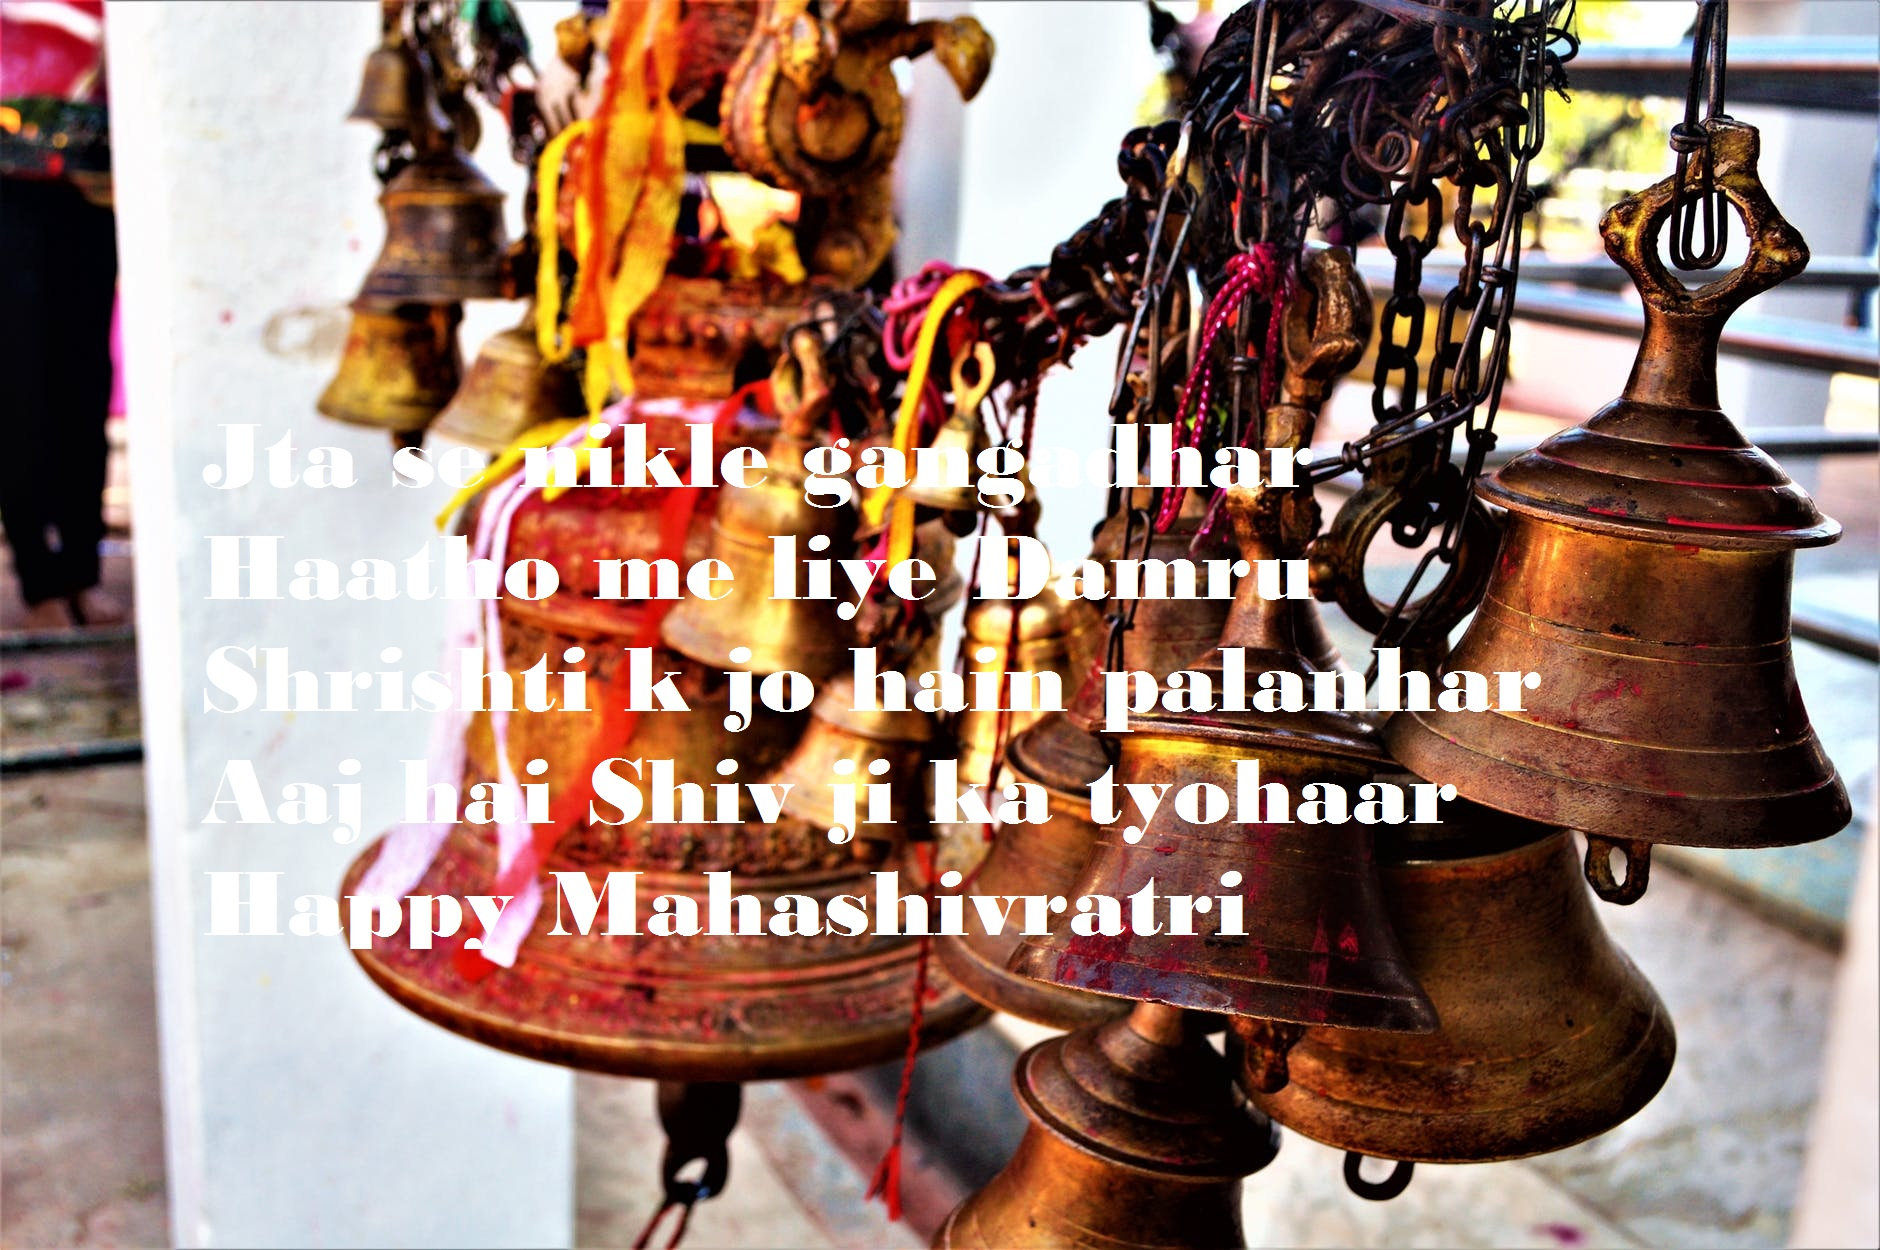 Happy Maha Shivratri Wishes